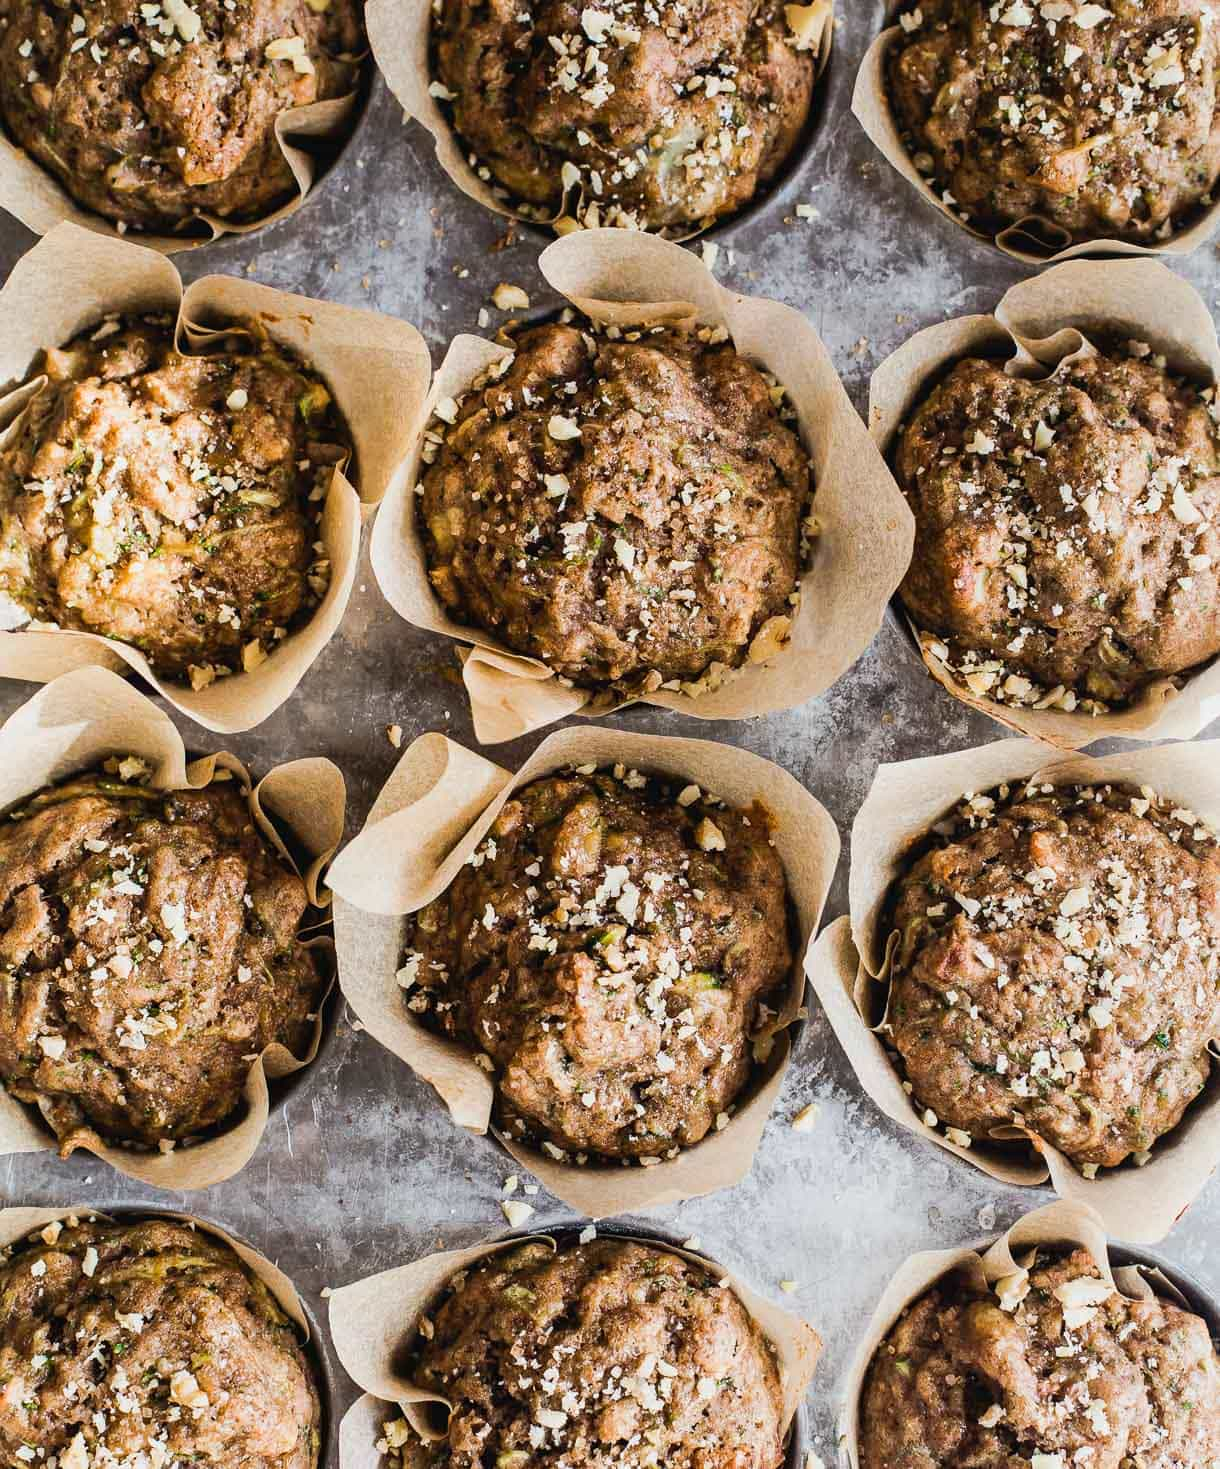 Leftover Sourdough Starter Muffins with Zucchini (made with spelt flour)